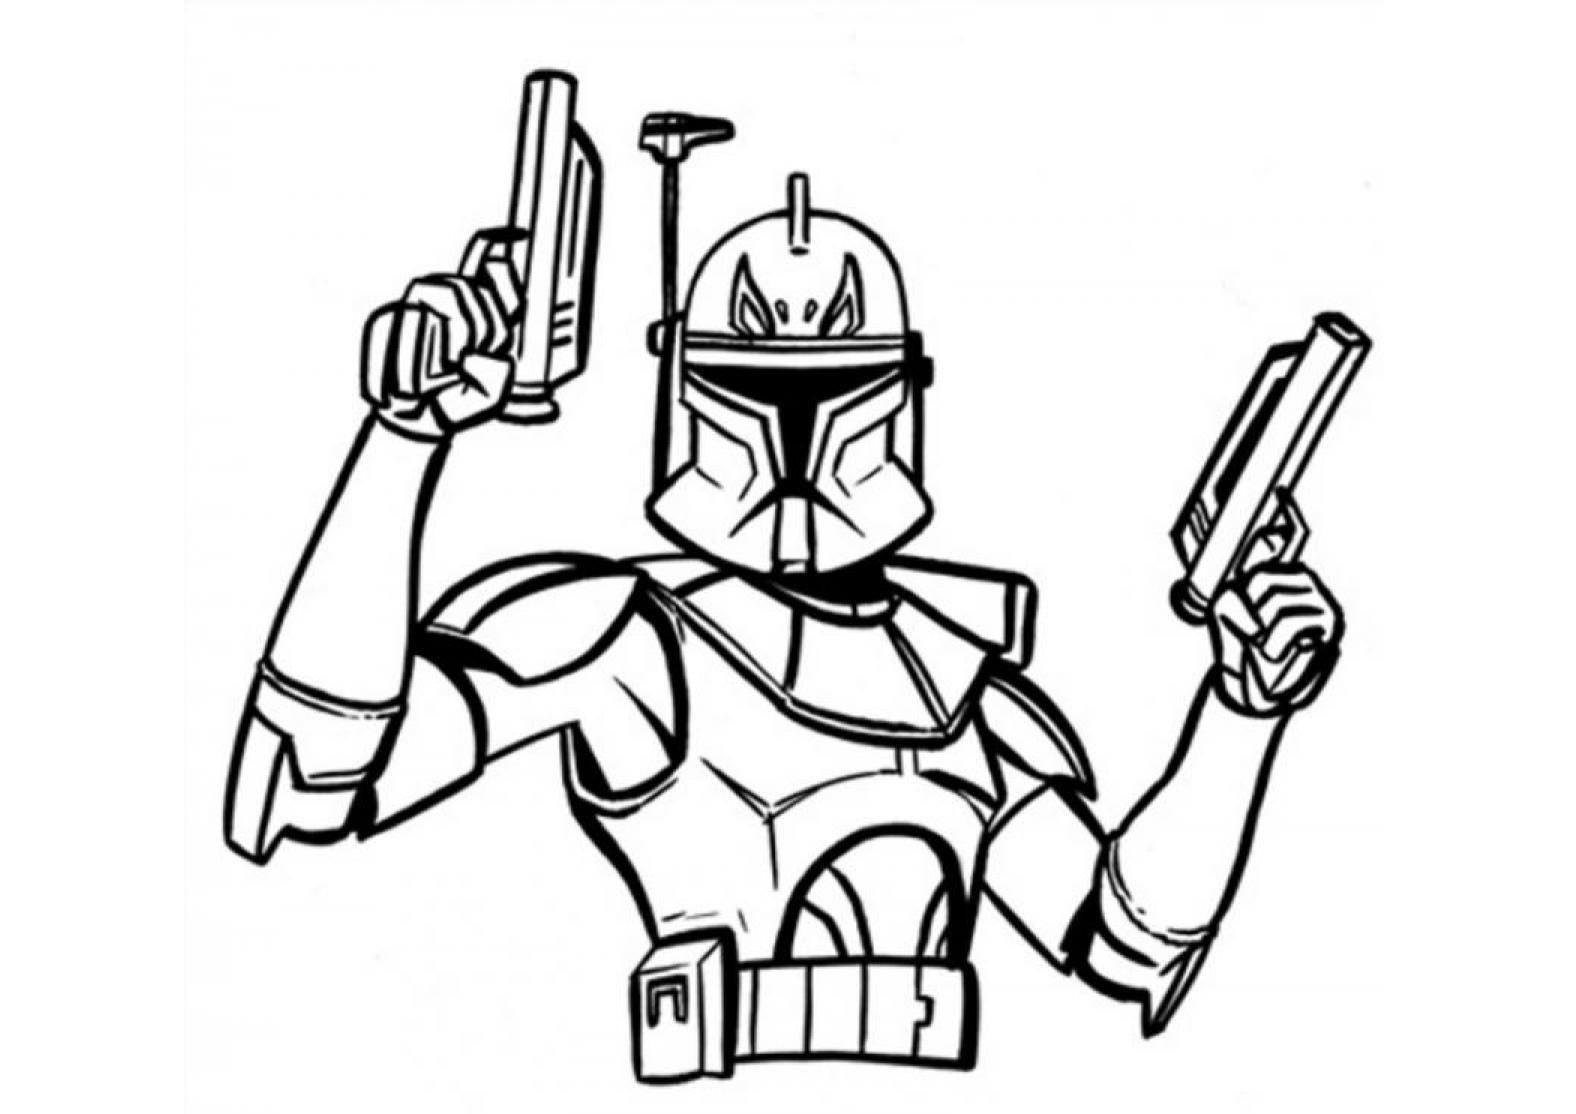 clone trooper colouring pages star wars clone trooper drawing at getdrawings free download pages clone colouring trooper